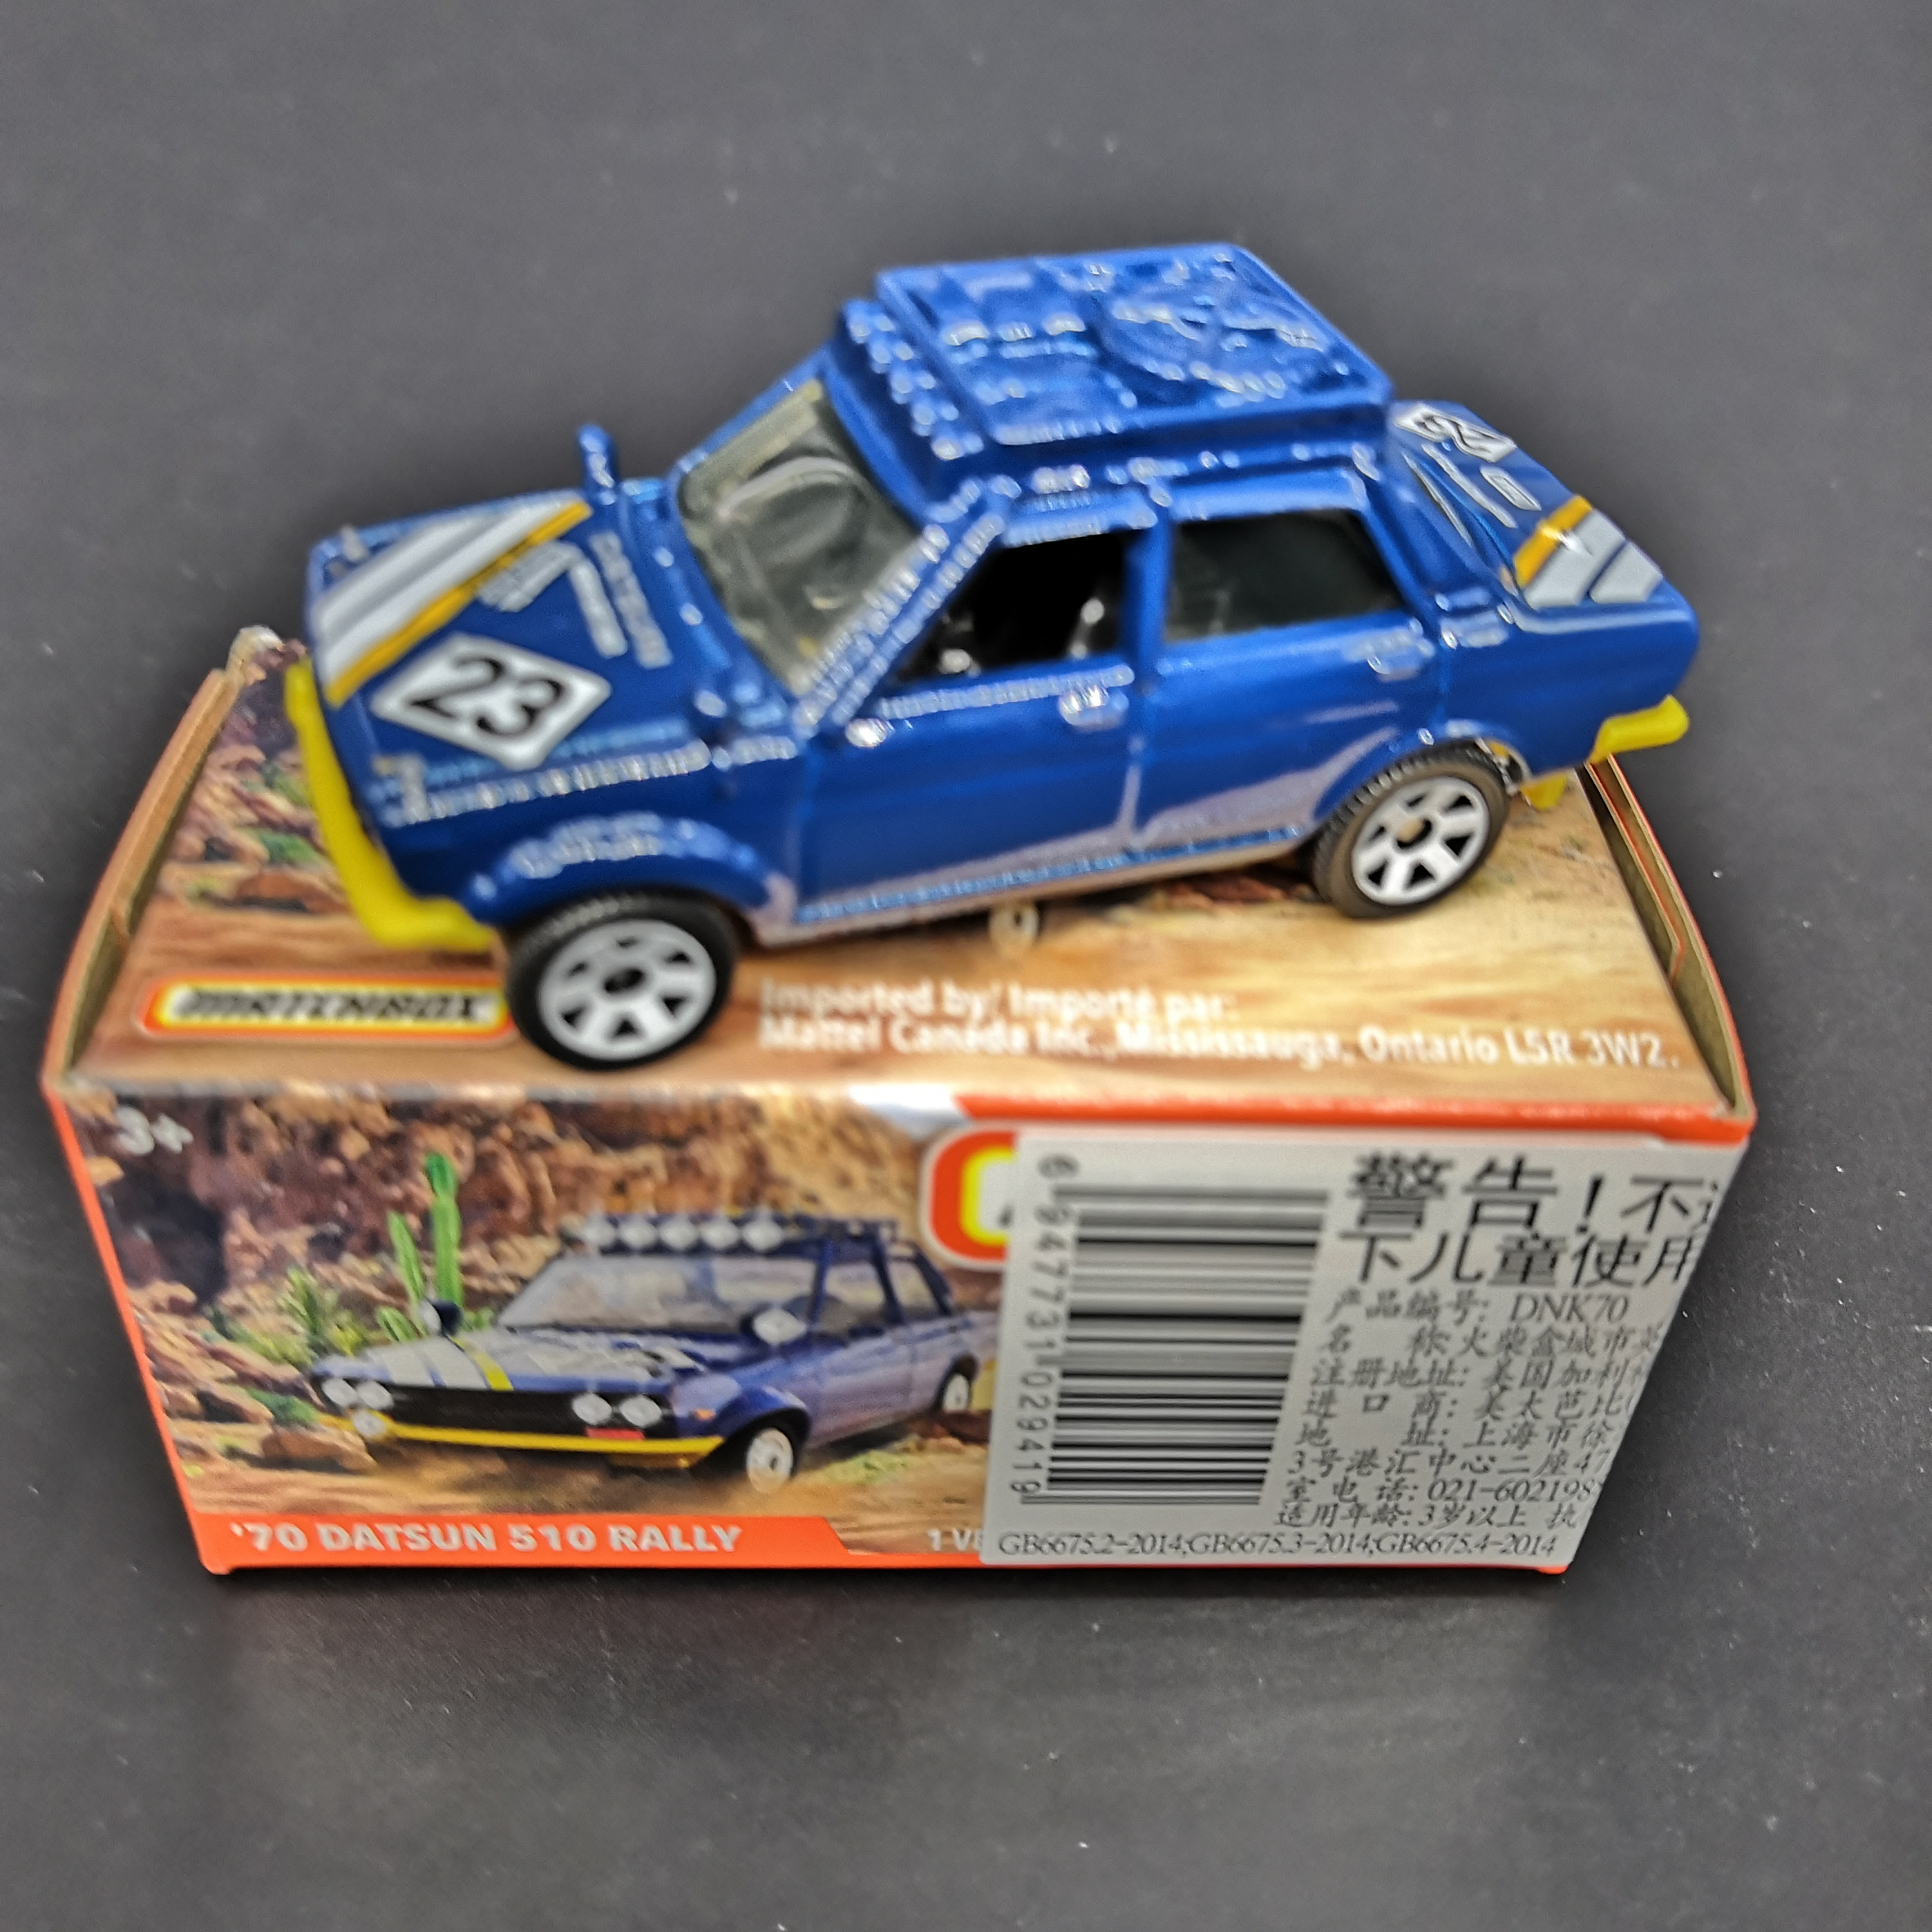 2019 Matchbox Car 1 64 Sports Car 70 Datsun 510 Rally Metal Material Body Race Car Collection Alloy Car Gift Diecasts Toy Vehicles Aliexpress